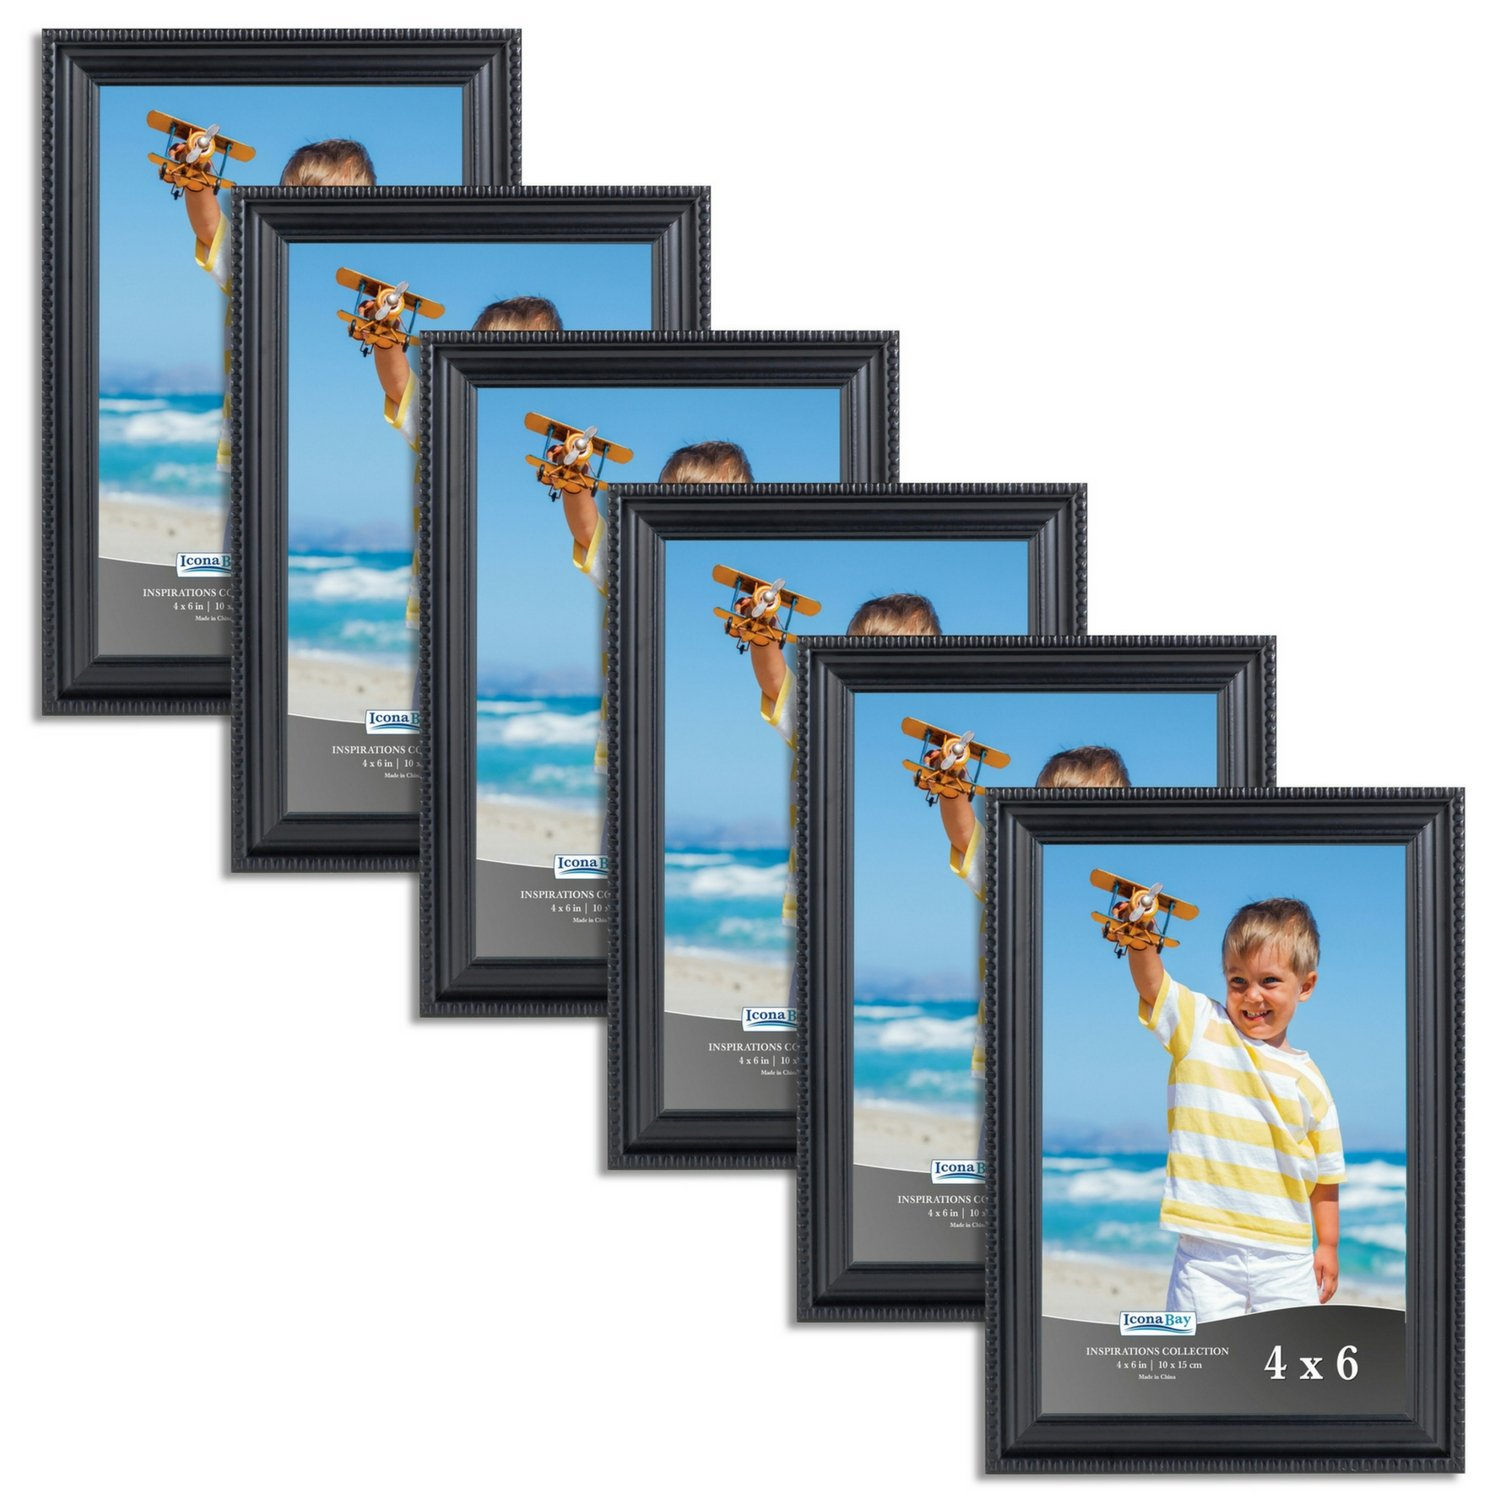 Icona Bay 4x6 Picture Frames, (6 Pack) Black Picture Frame Set, Wall Mount or Table Top, 4 by 6 Photo Frames Display Horizontally or Vertically, Inspirations Collection